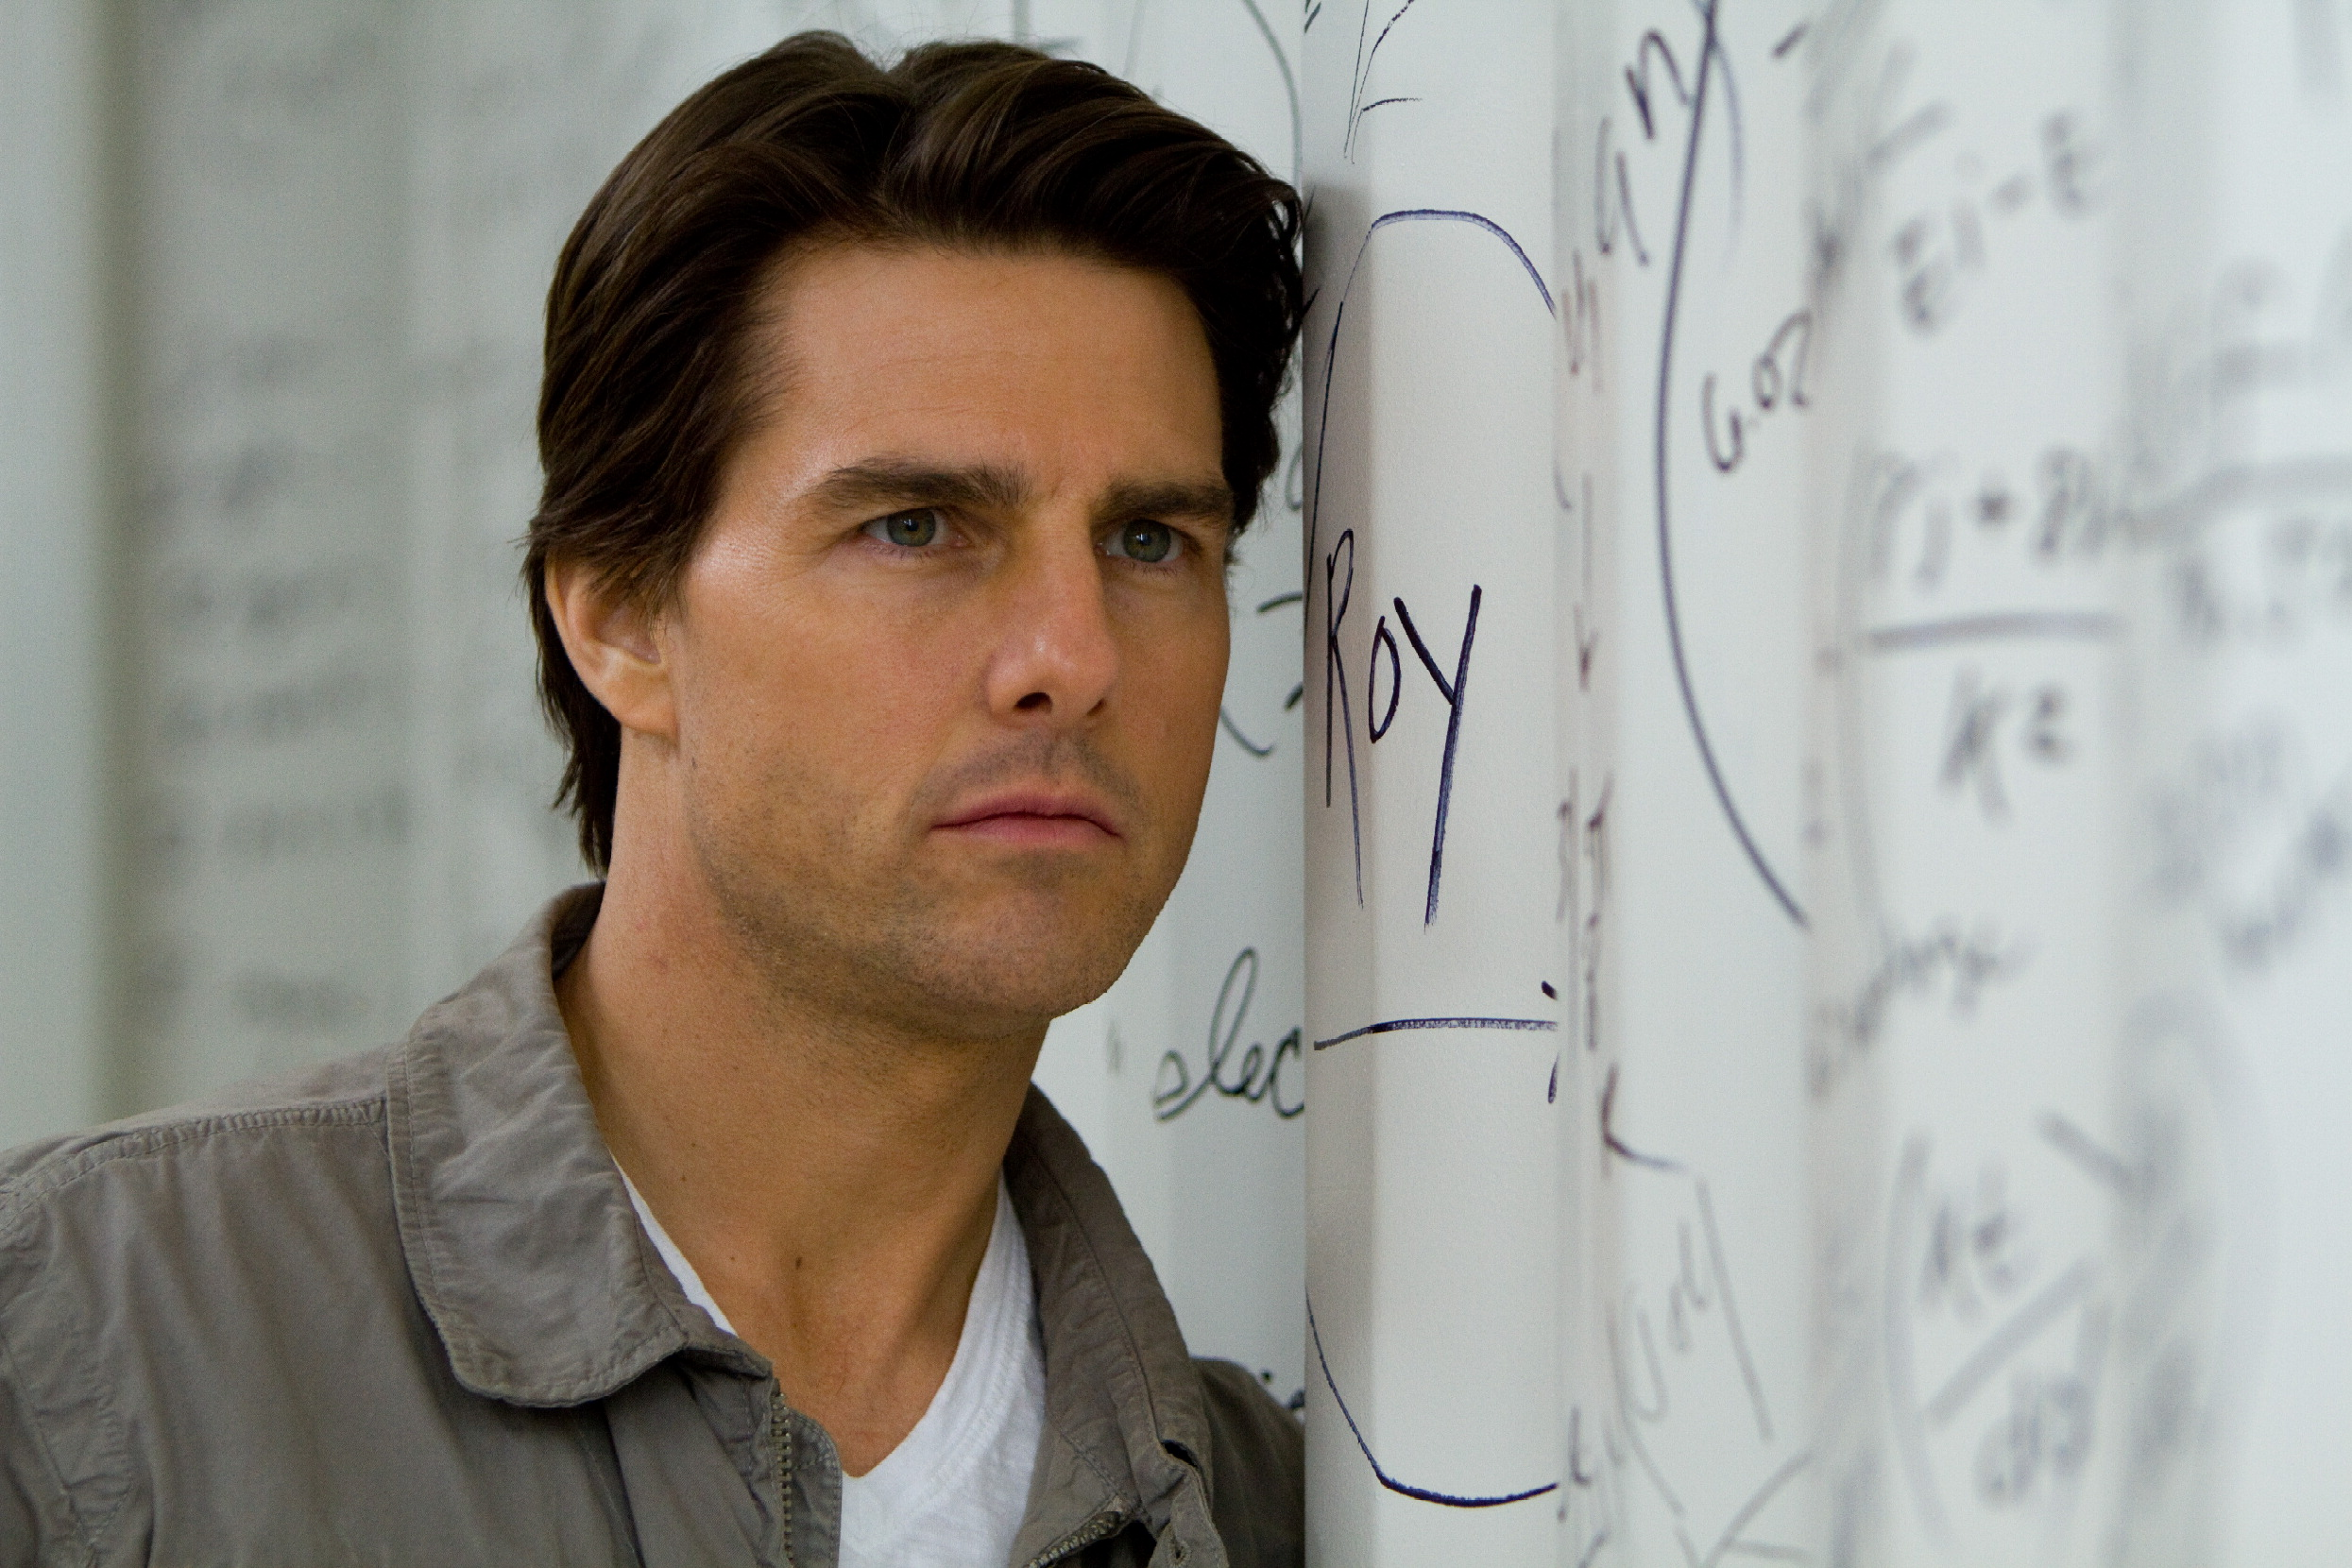 Tom Cruise Wallpapers High Resolution and Quality DownloadTom Cruise 2490x1660